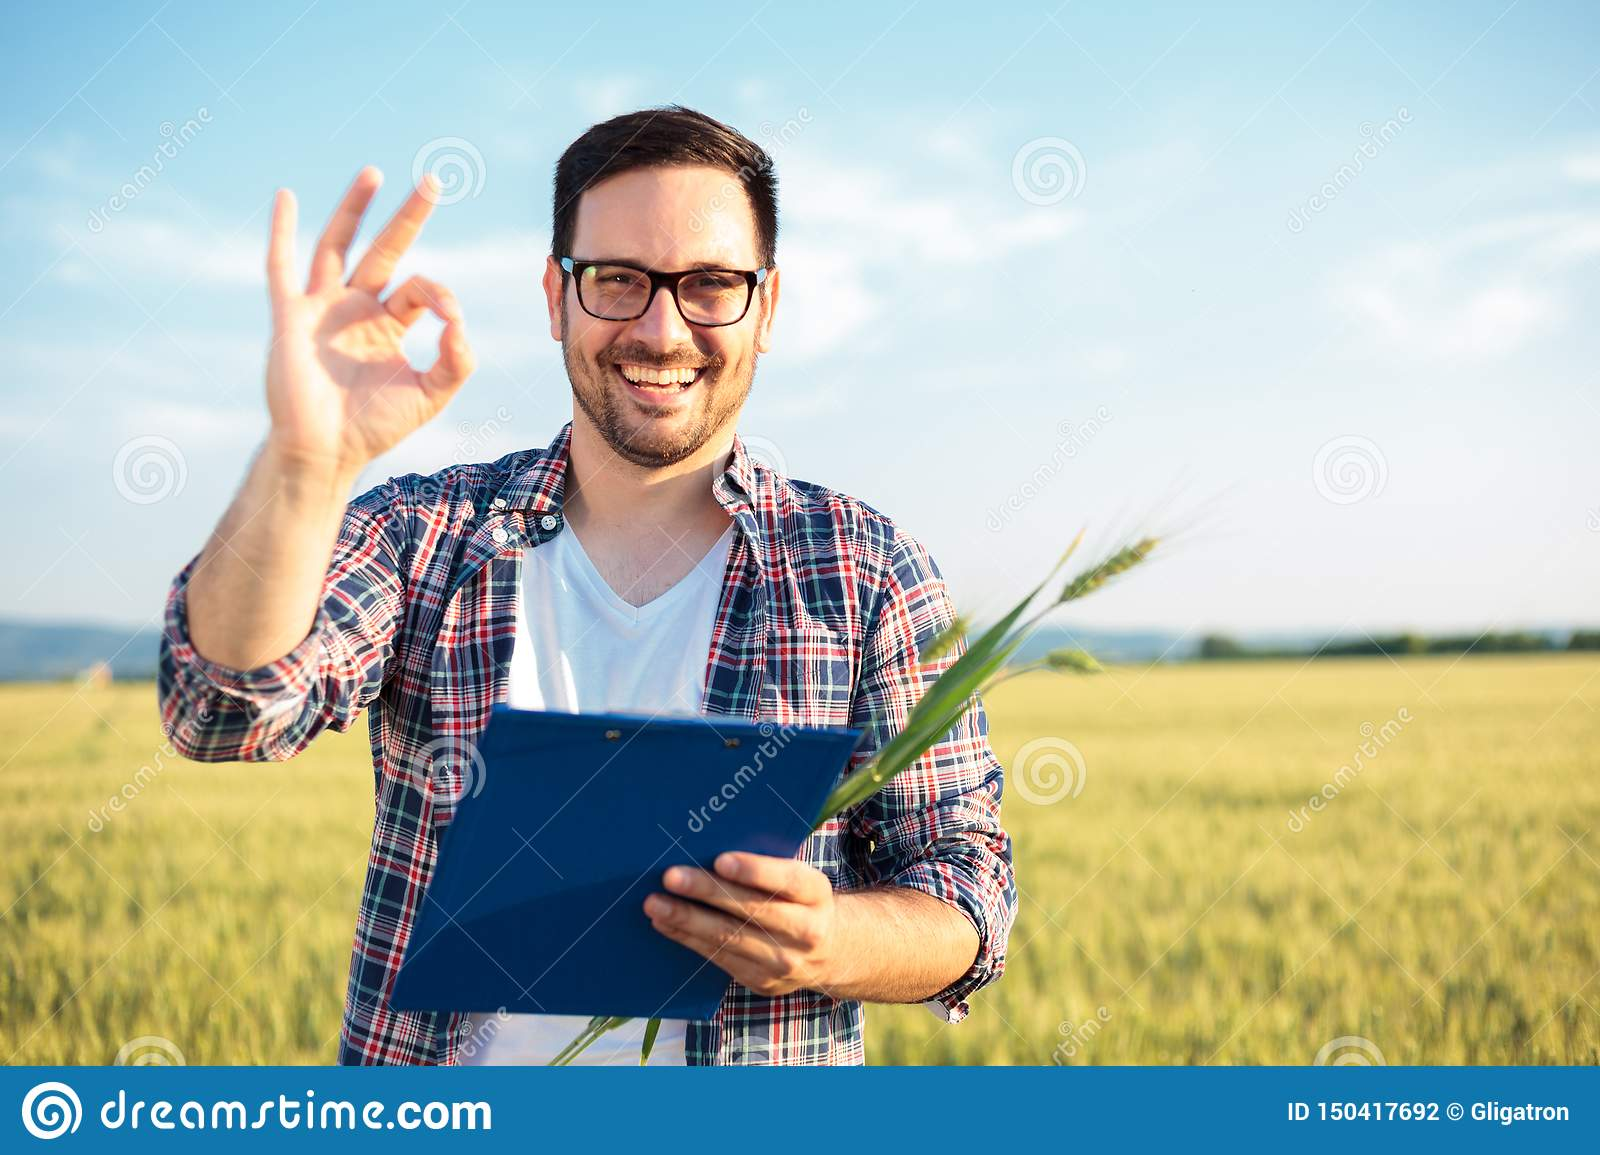 Smiling young agronomist or farmer inspecting wheat field before the harvest. Looking directly at camera, showing OK sign